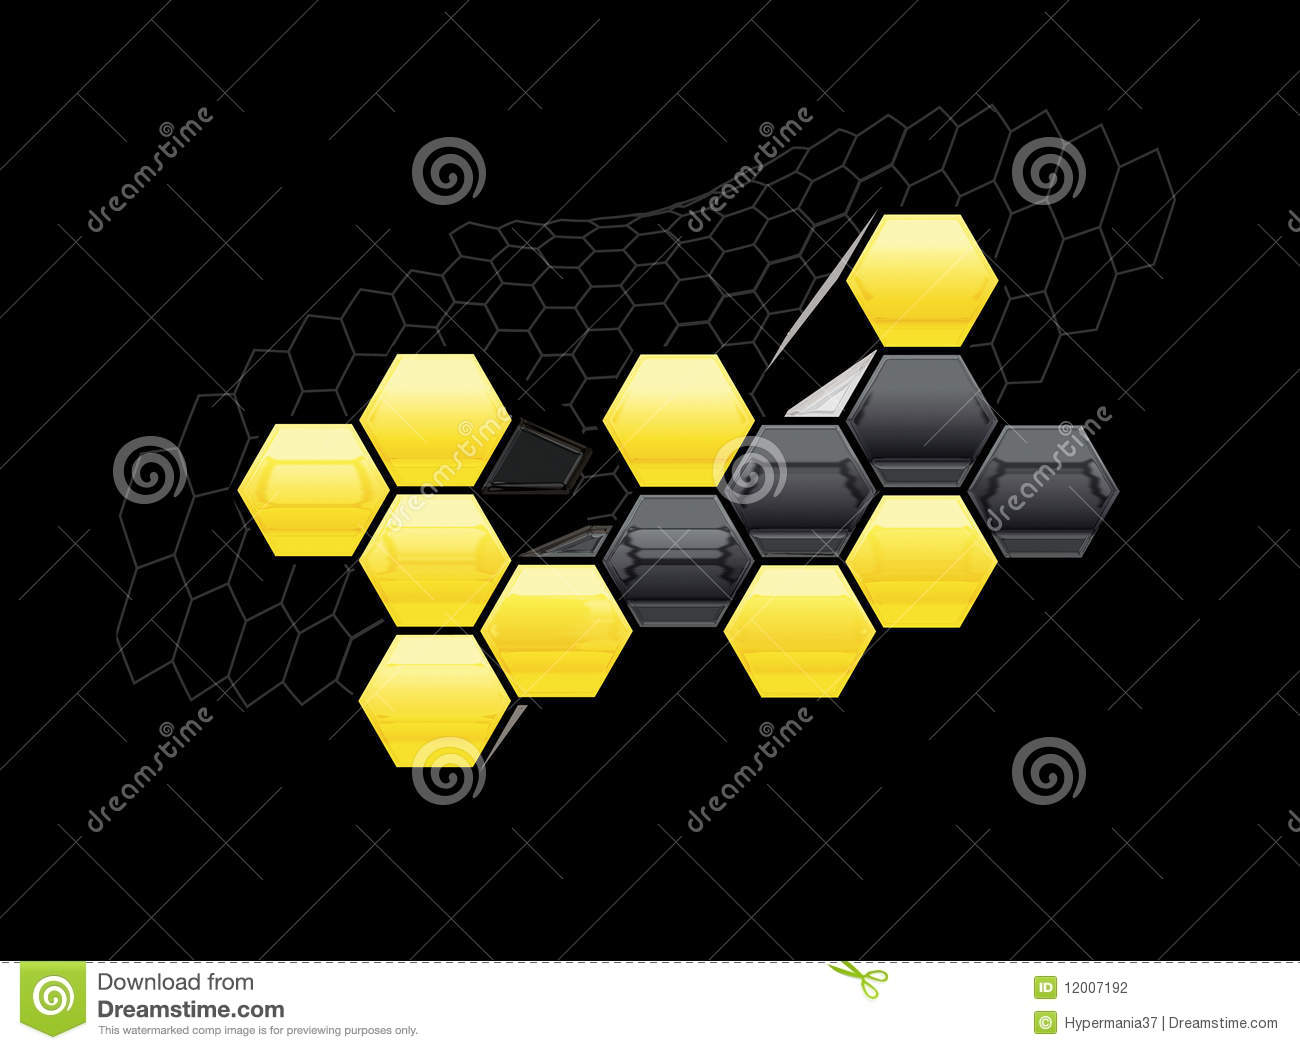 Honeycomb Graphic Design | www.pixshark.com - Images ...